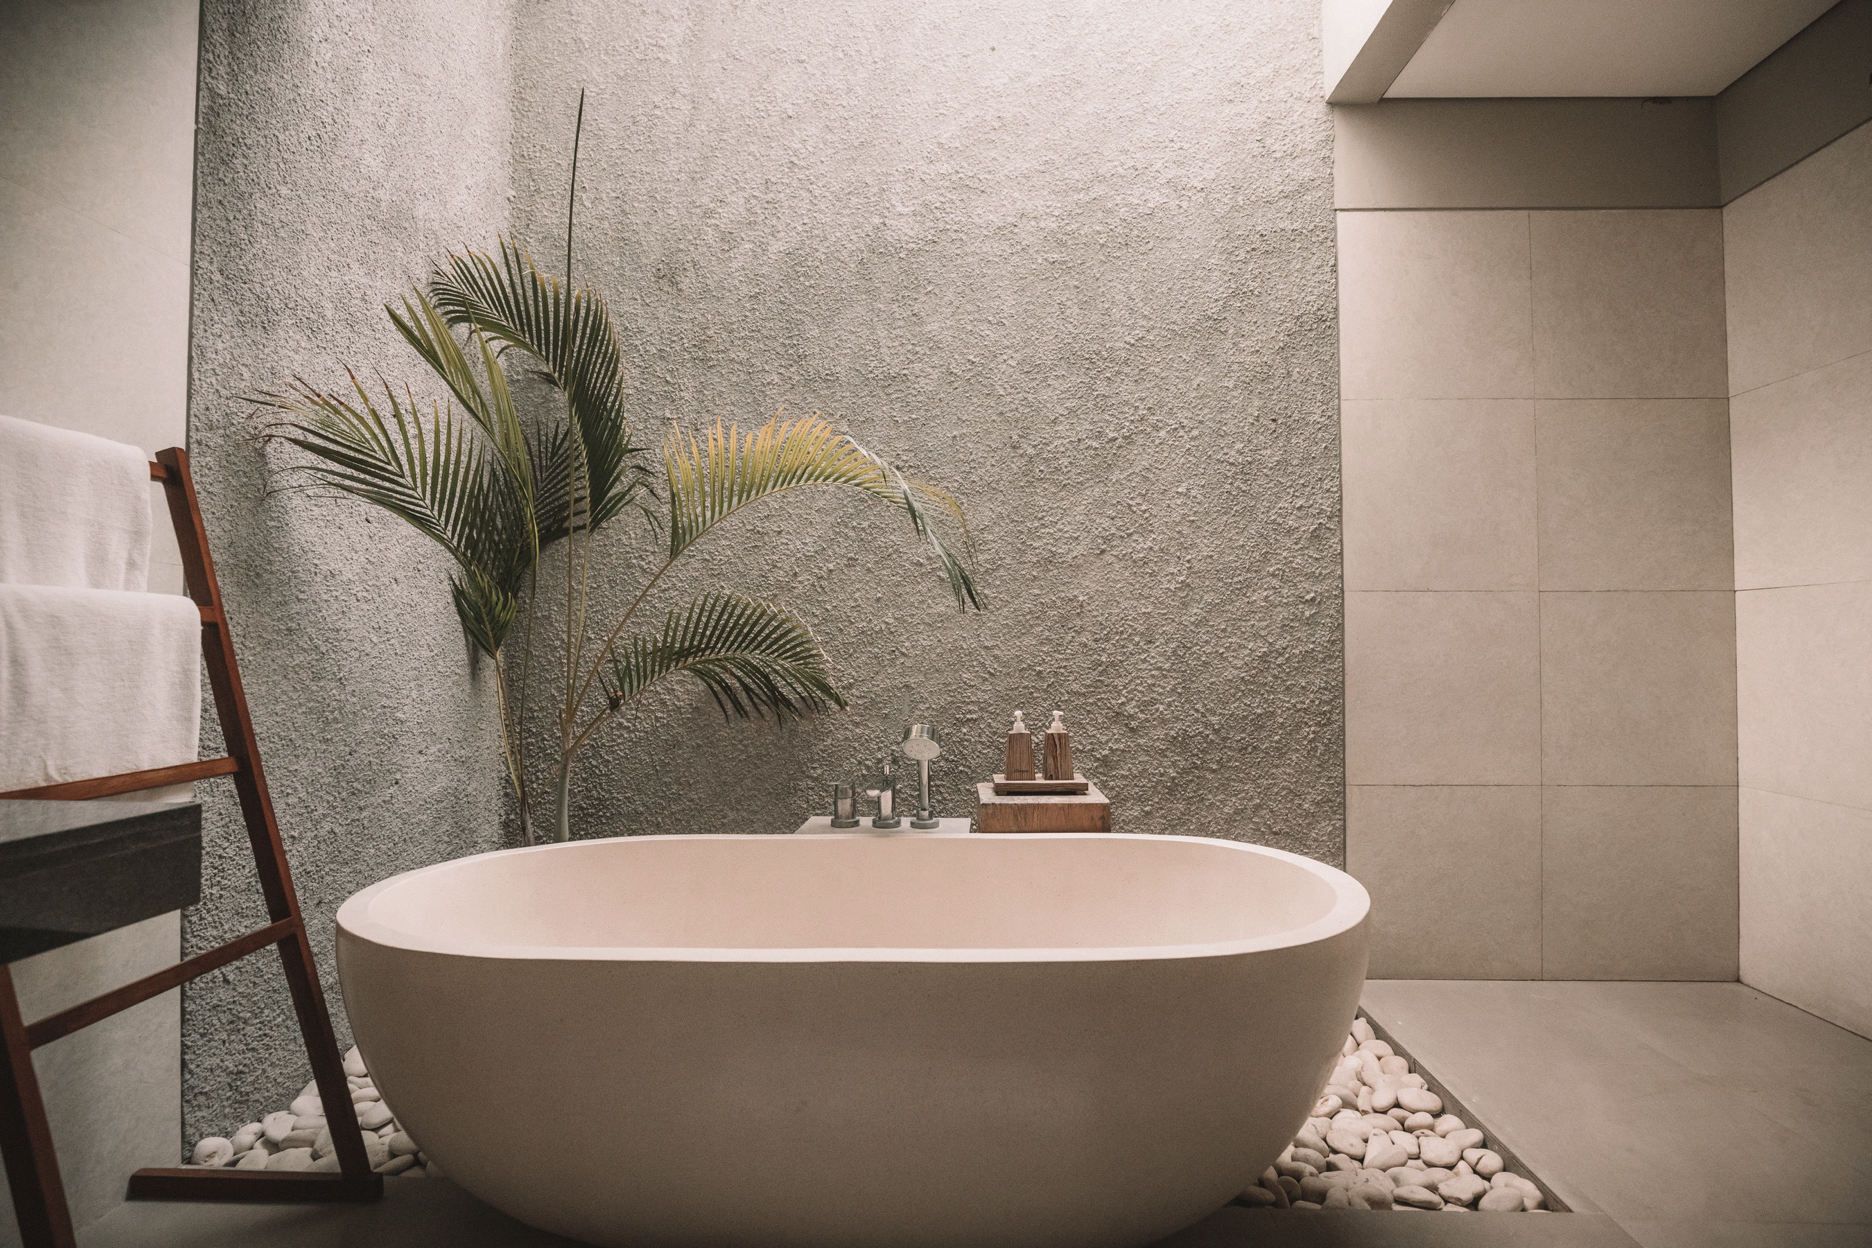 Preparing your bath according to our tips for the ultimate at-home spa retreat.